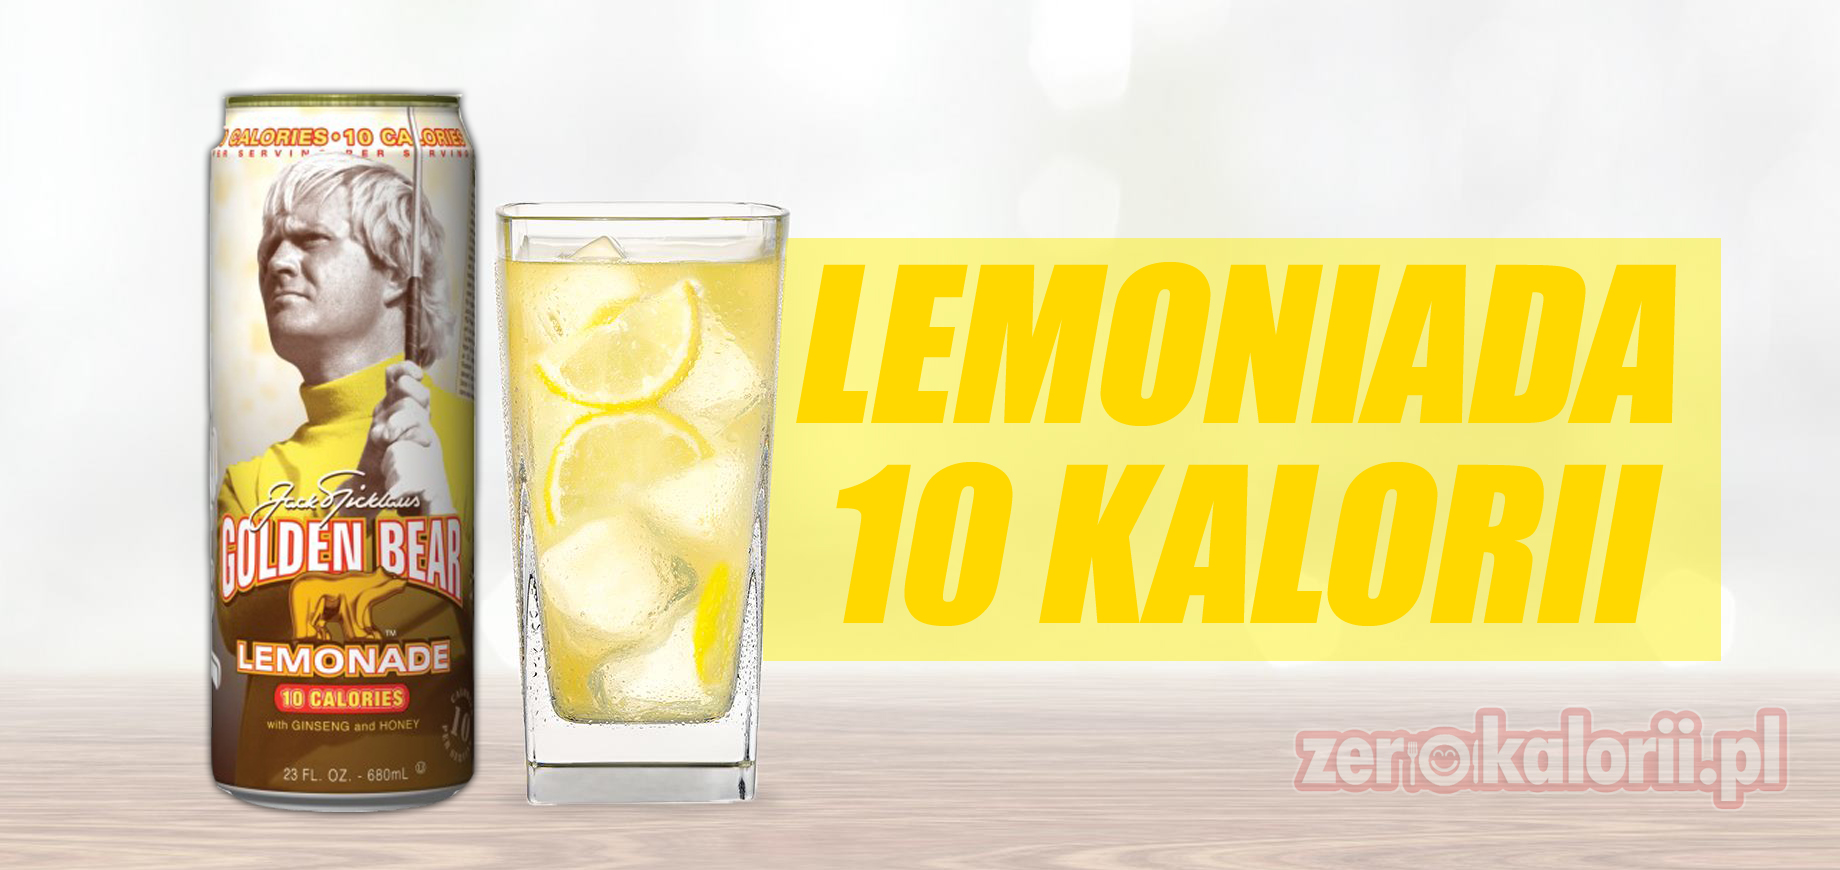 lemoniada golden bear 10 kalorii